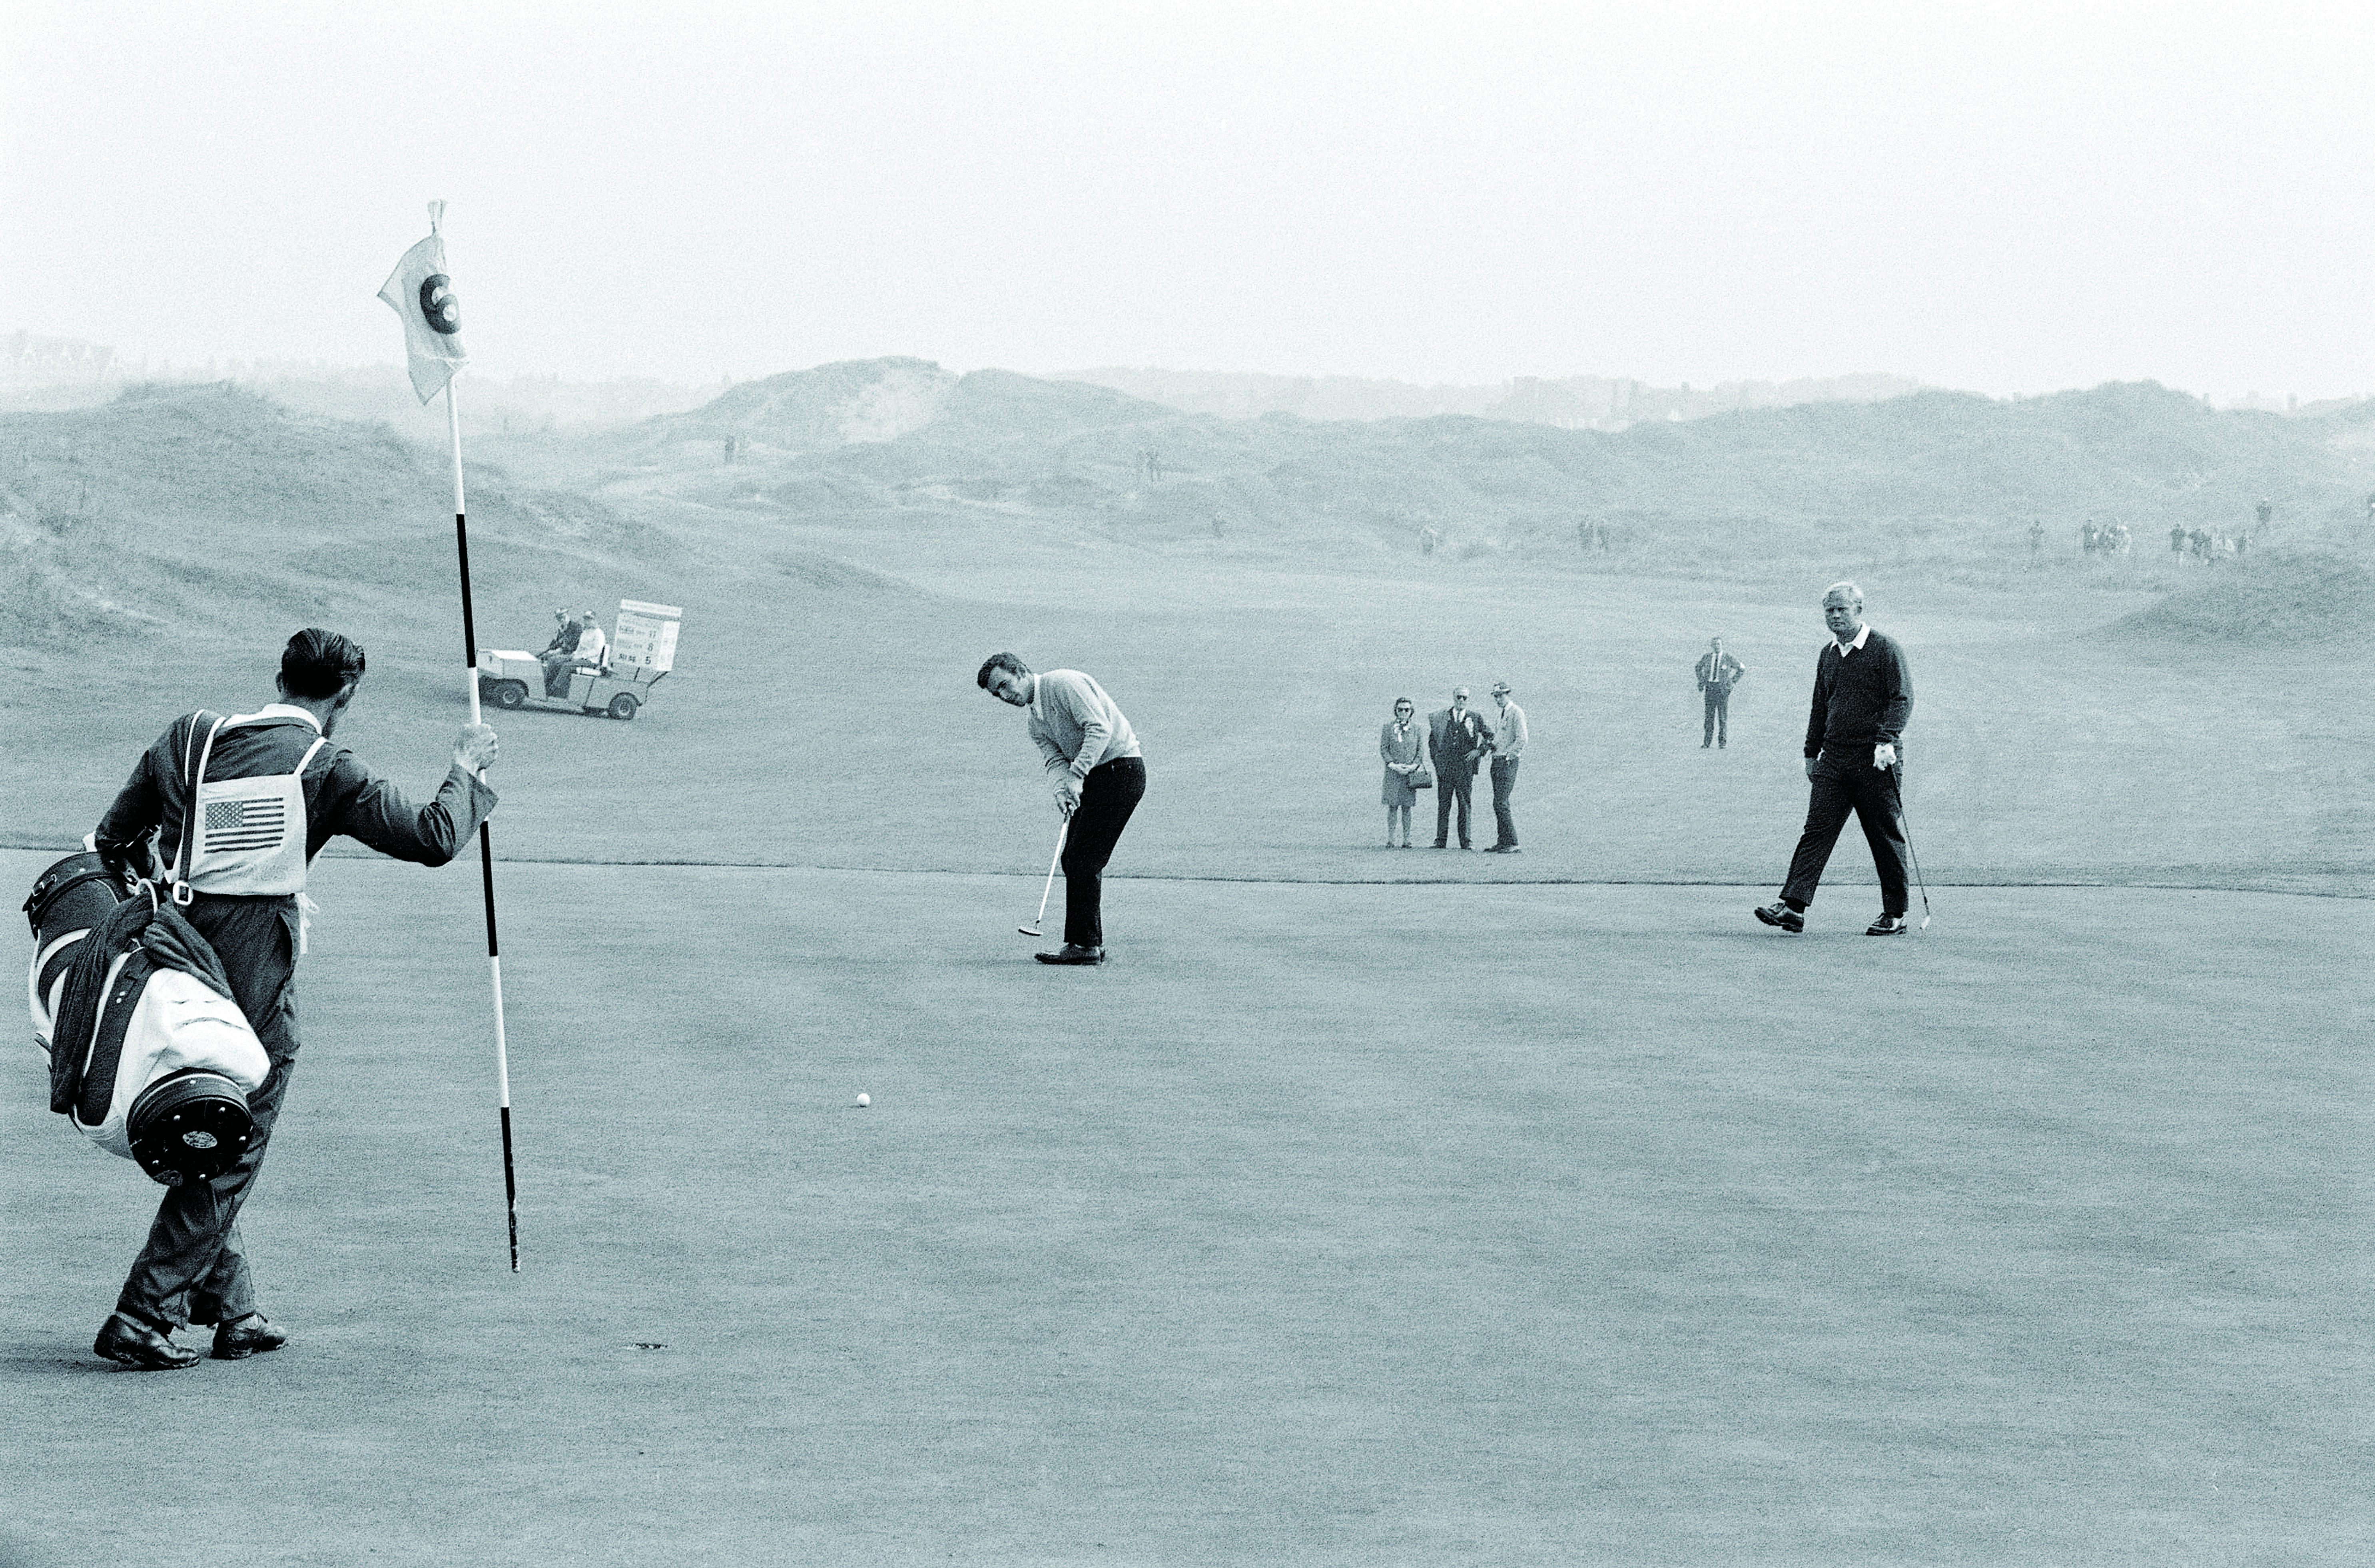 Tony Jacklin and Jack Nicklaus at the 1969 Ryder Cup at Royal Birkdale. The Cup ended in a tie that year when Nicklaus conceded a missable putt to Jacklin, a sportsmanship move for the ages.